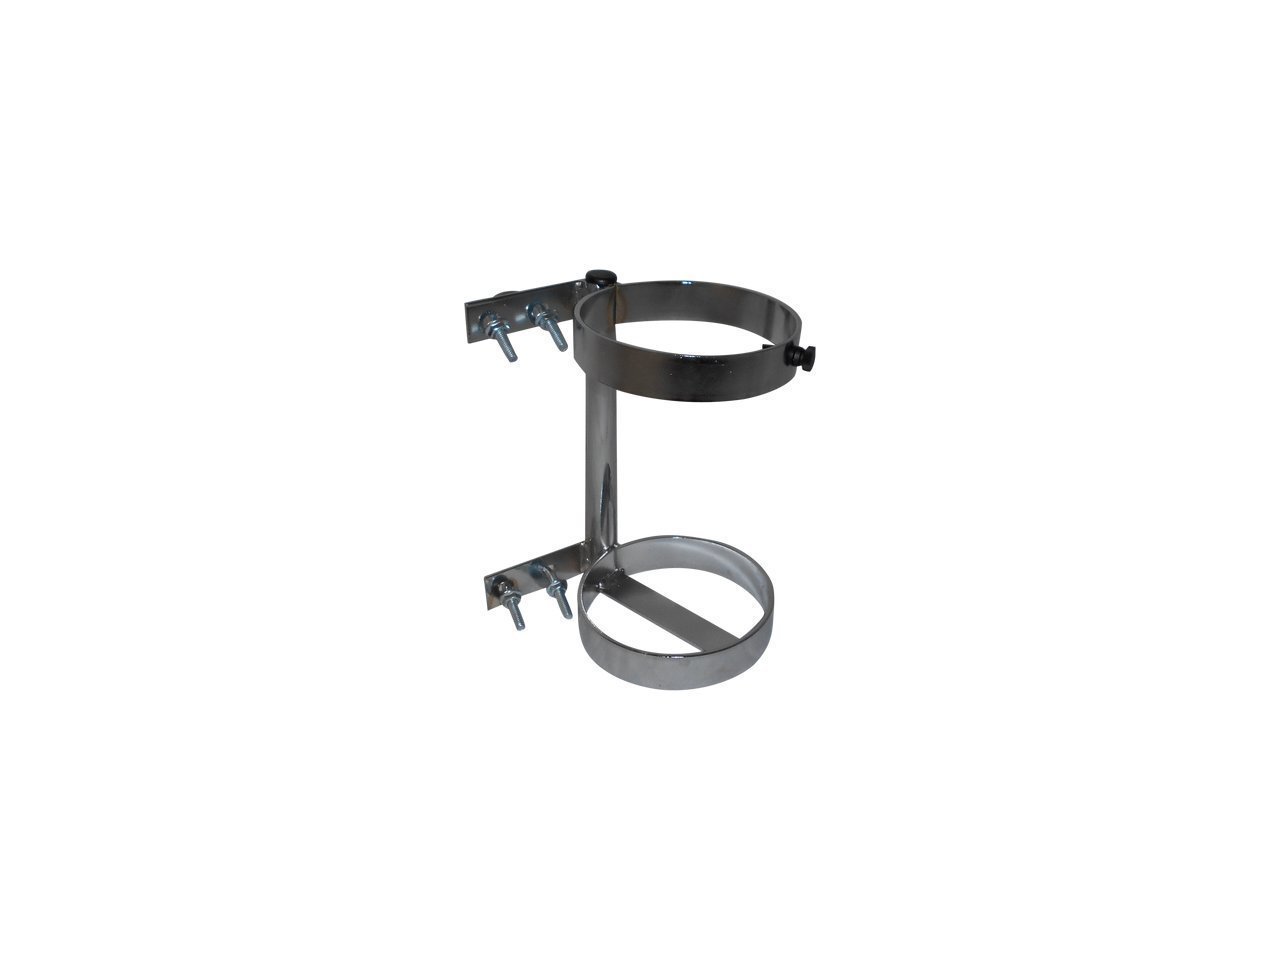 FWF OXYGEN HOLDER FOR A WALKER HOLDS 1 (D OR E STYLE) CYLINDER DIAMETER MADE IN USA